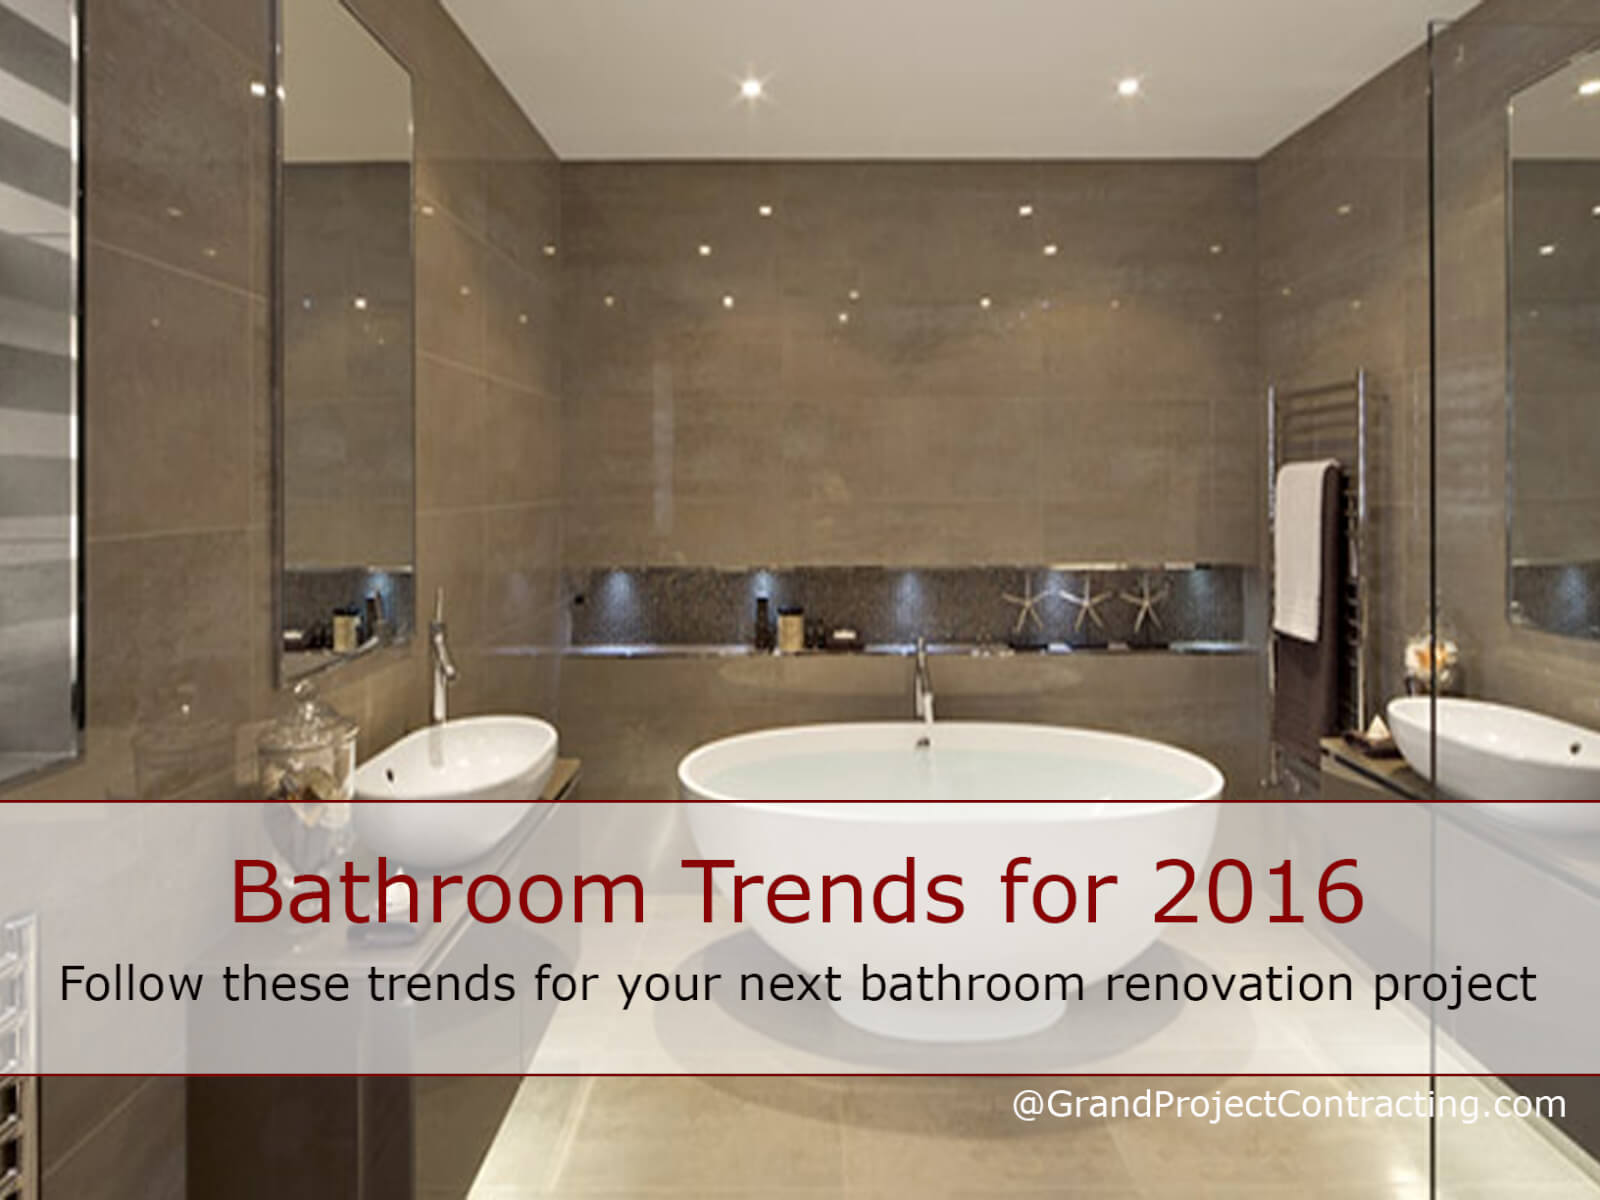 Bathroom trends for 2016 bathroom renovation contractor for Best small bathroom designs 2016